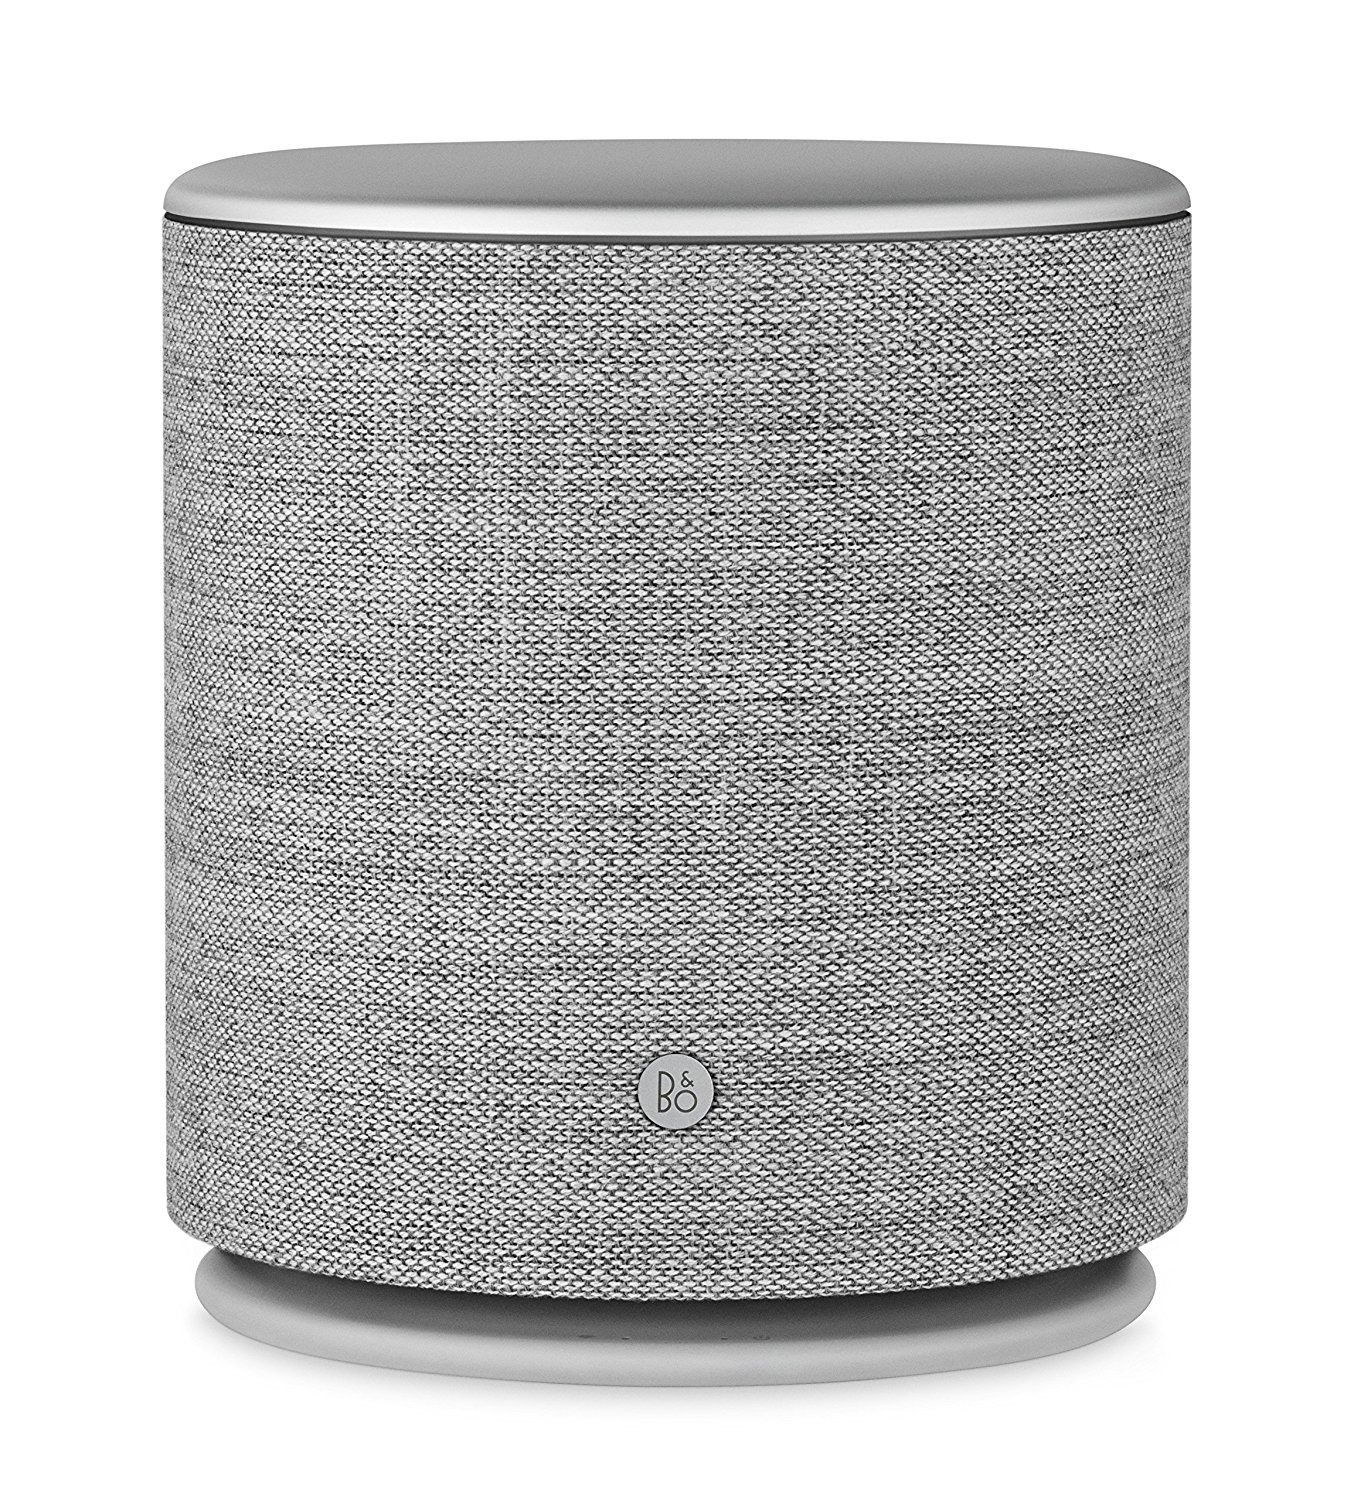 Bang & Olufsen Beoplay M5 Airplay Speaker